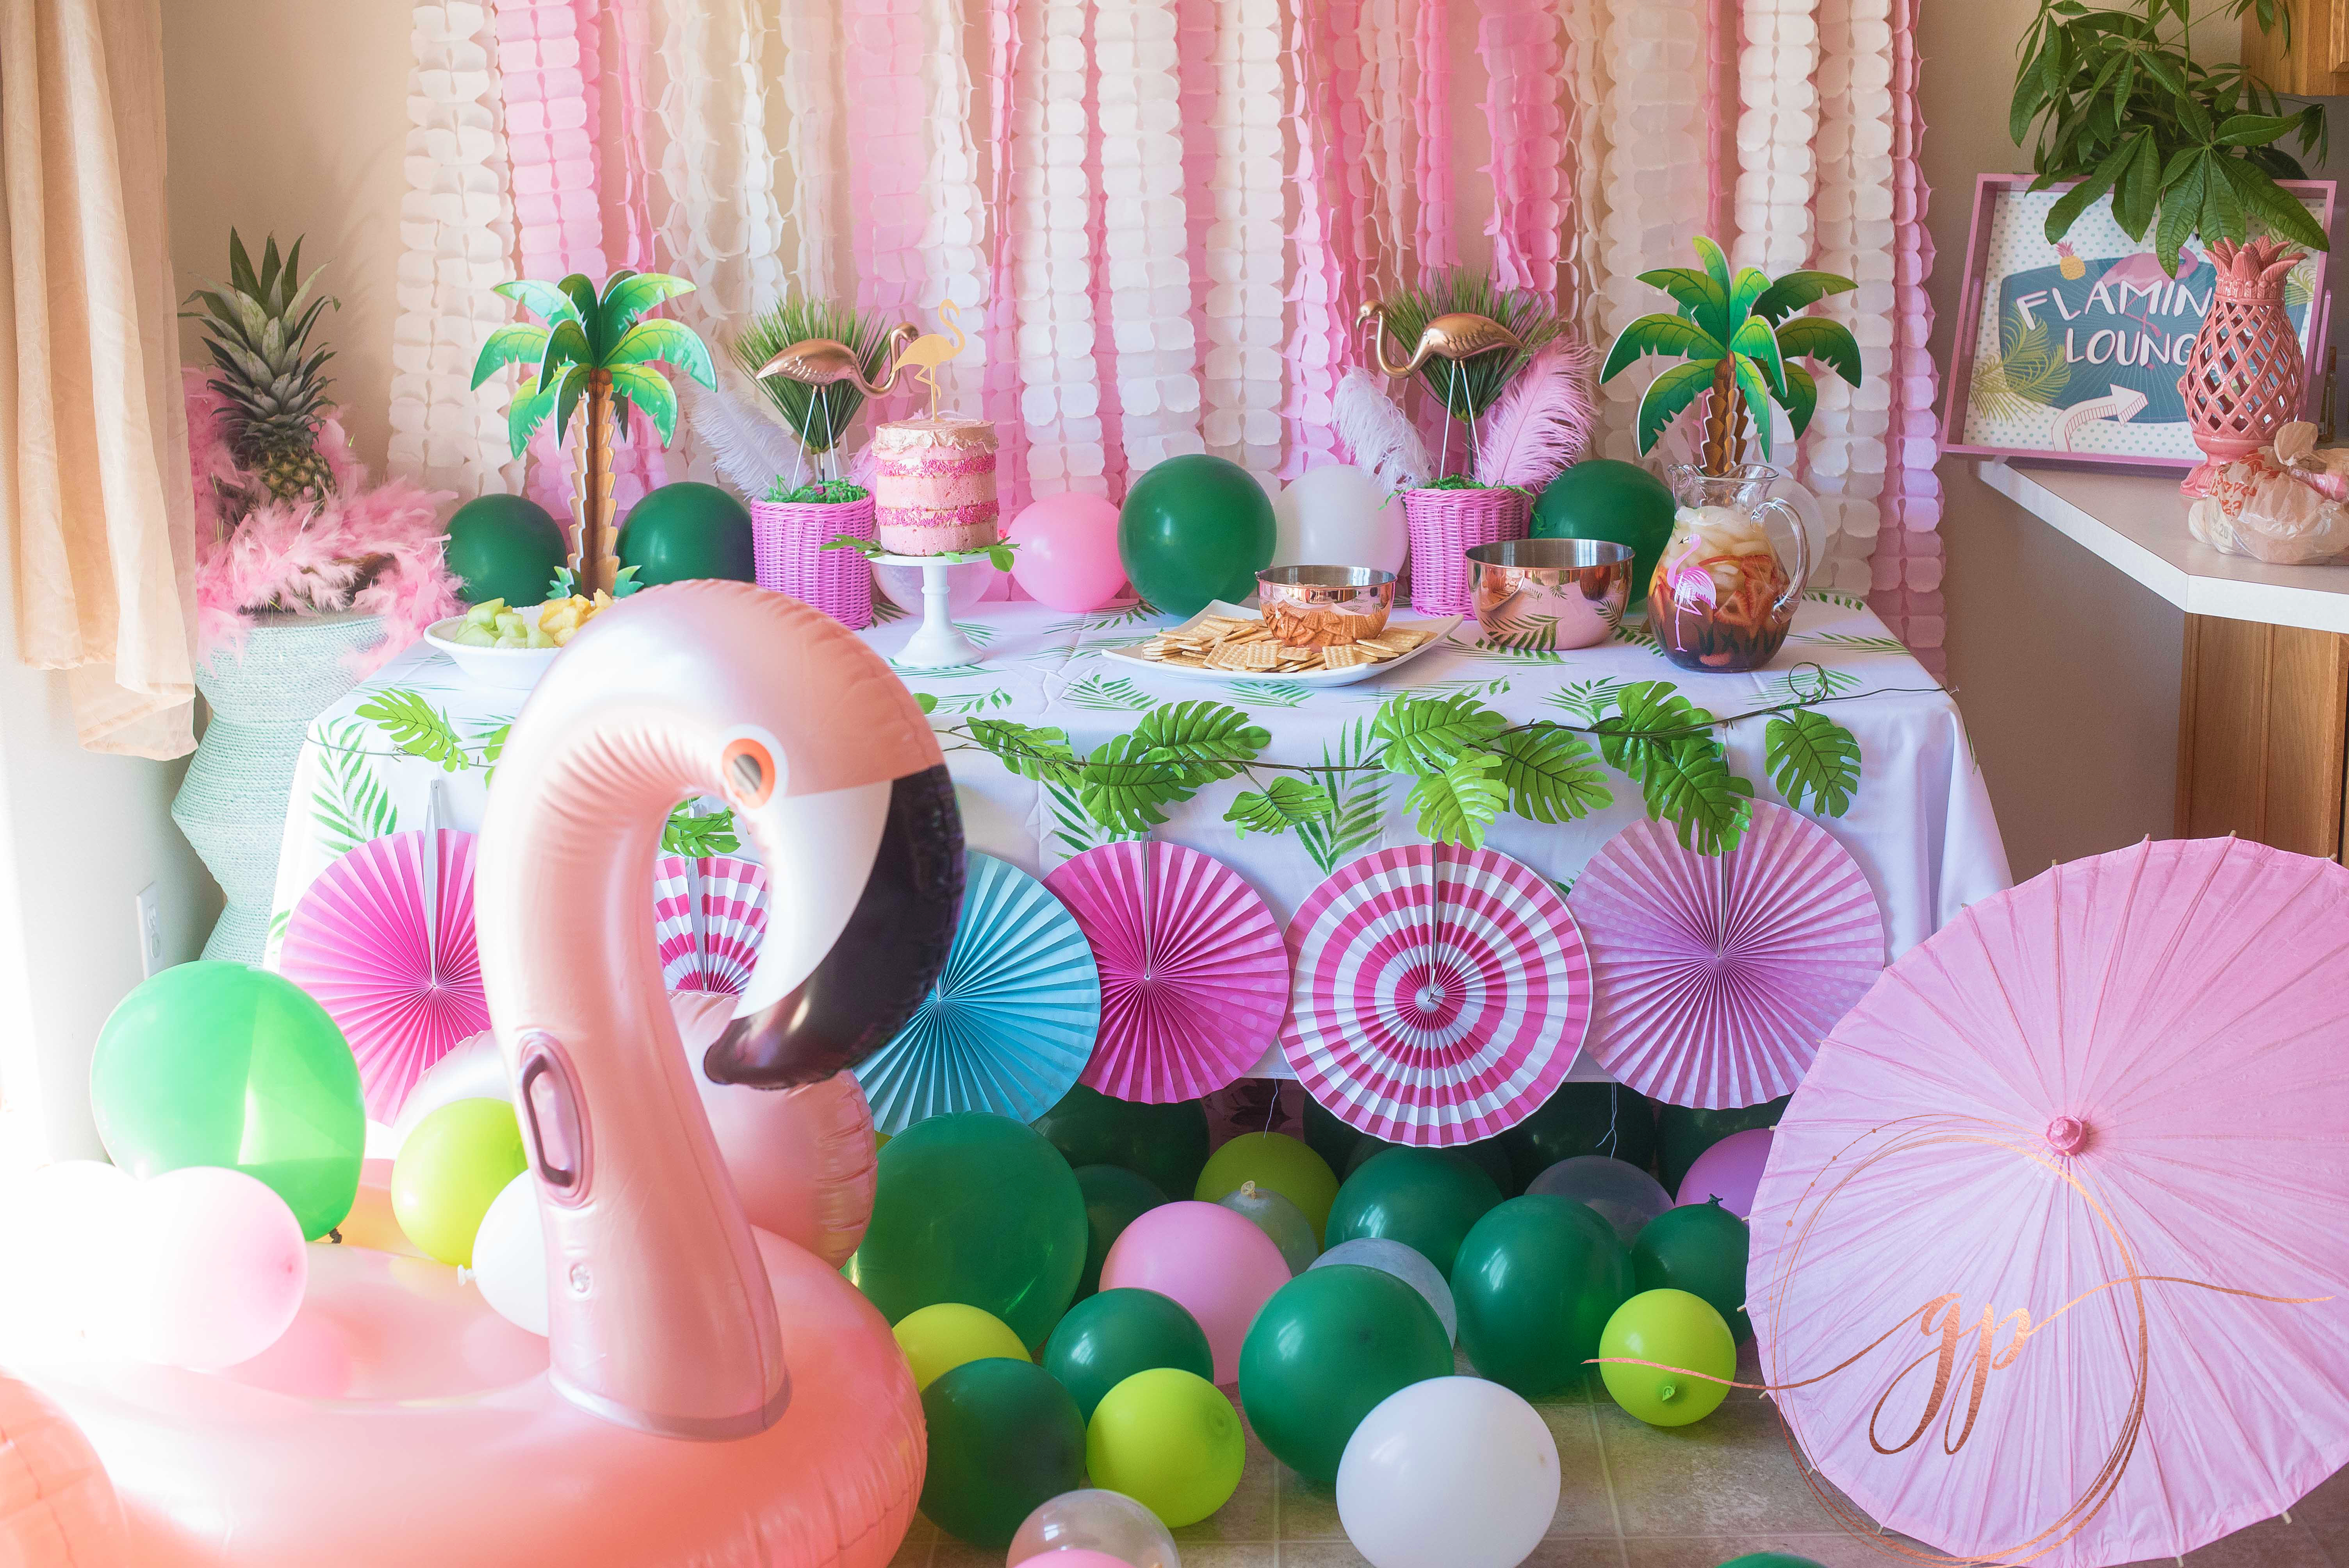 @aglitterparty's cover photo for 'How to Fla-Mingle! Flamingo Party Inspiration & Ideas From TheGlitterParty.com'